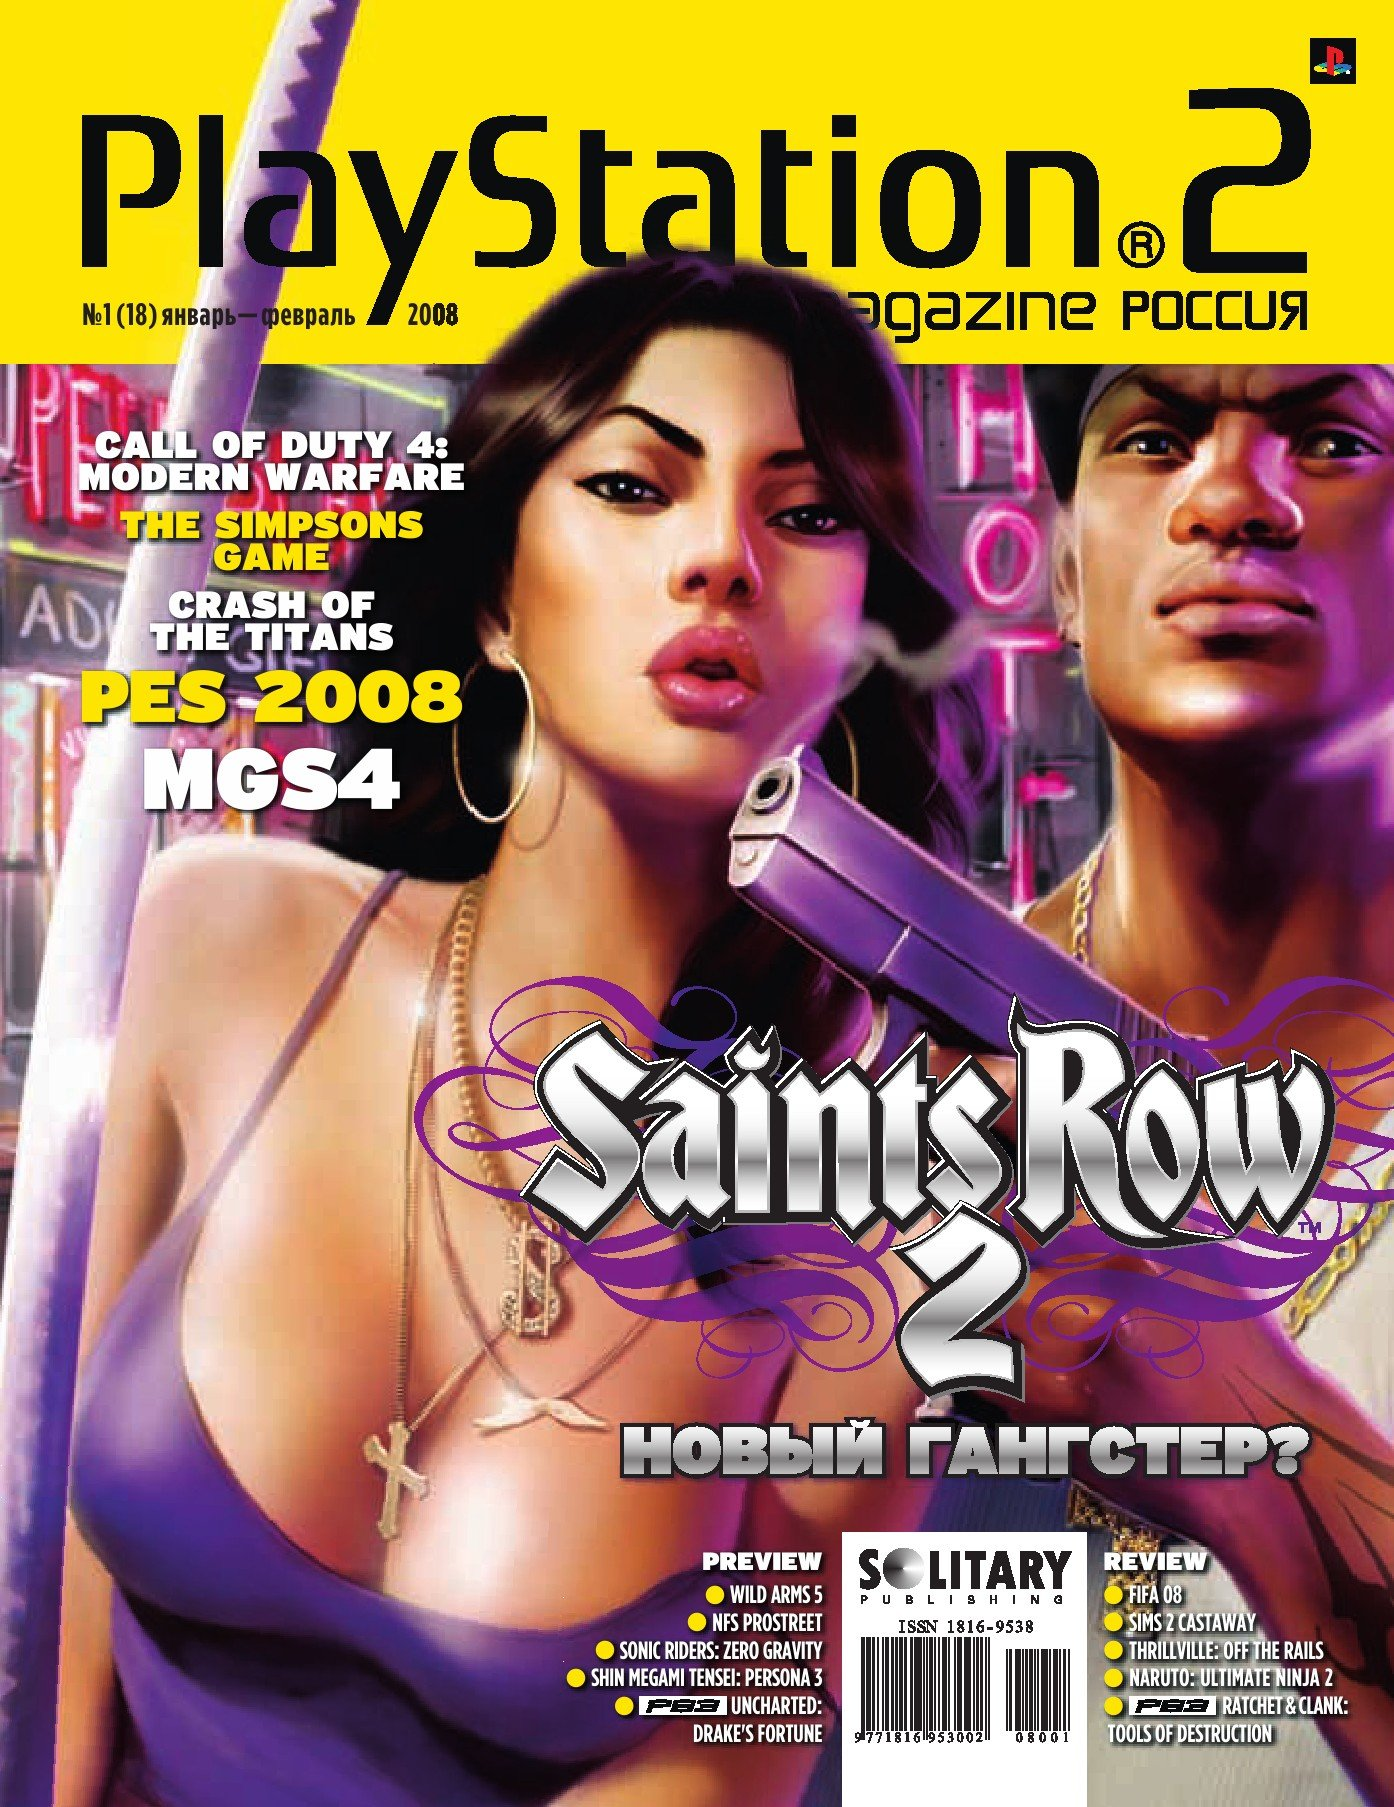 Playstation 2 Official Magazine (Russia) Issue 18 - Jan./Feb. '08